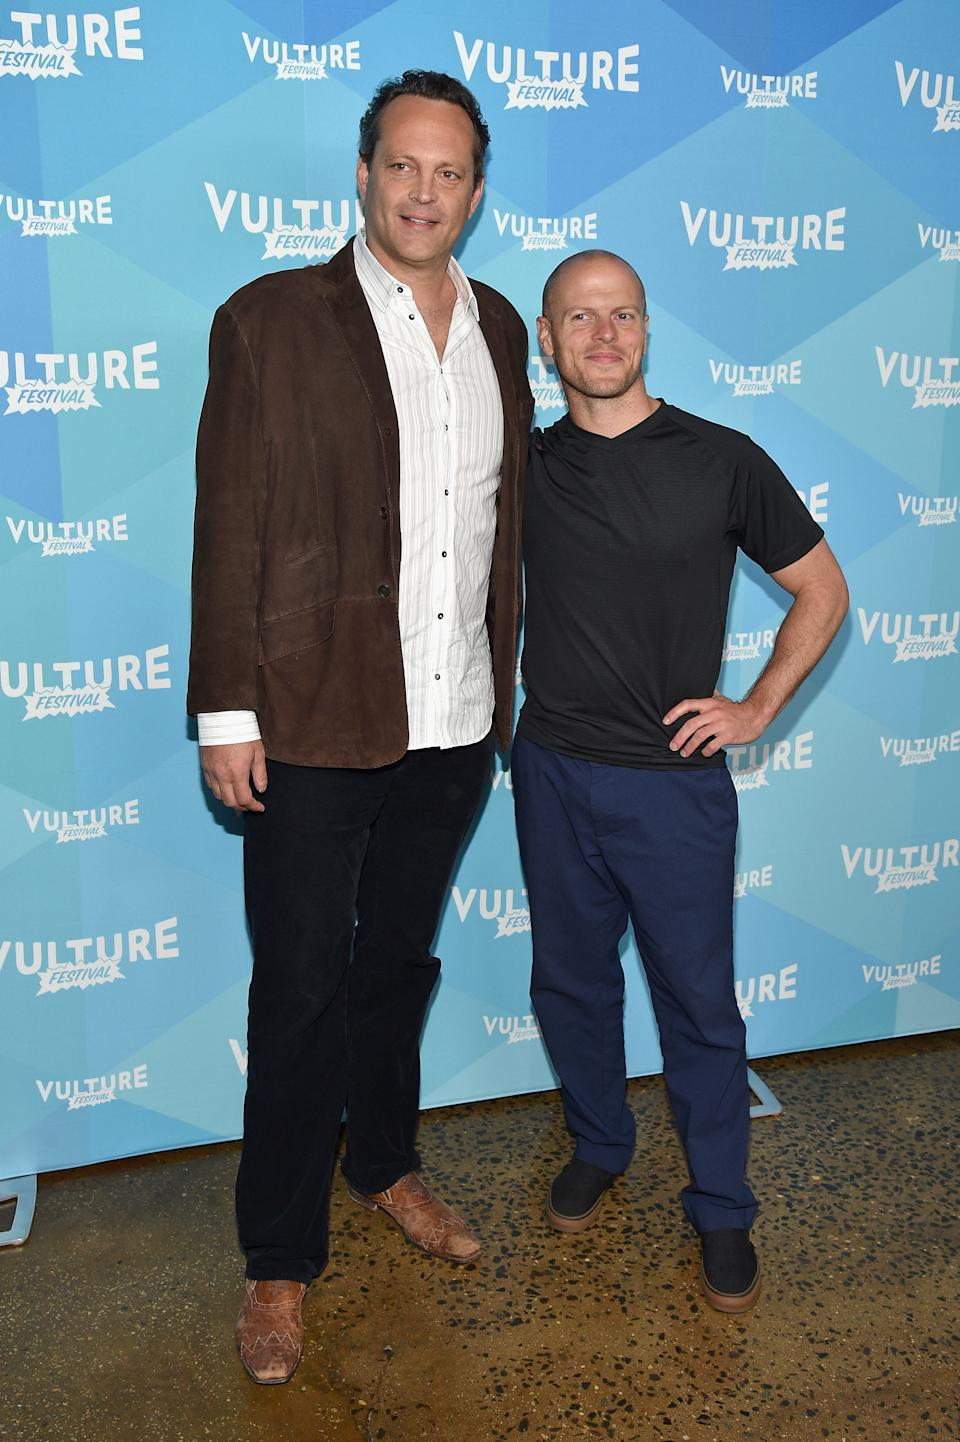 NEW YORK, NY - MAY 20:  Actor Vince Vaughn (L) and author Timothy Ferriss attend Tim Ferriss and Vince Vaughn: In Conversation at the 2017 Vulture Festival at Milk Studios on May 20, 2017 in New York City.  (Photo by Bryan Bedder/Getty Images for Vulture Festival)